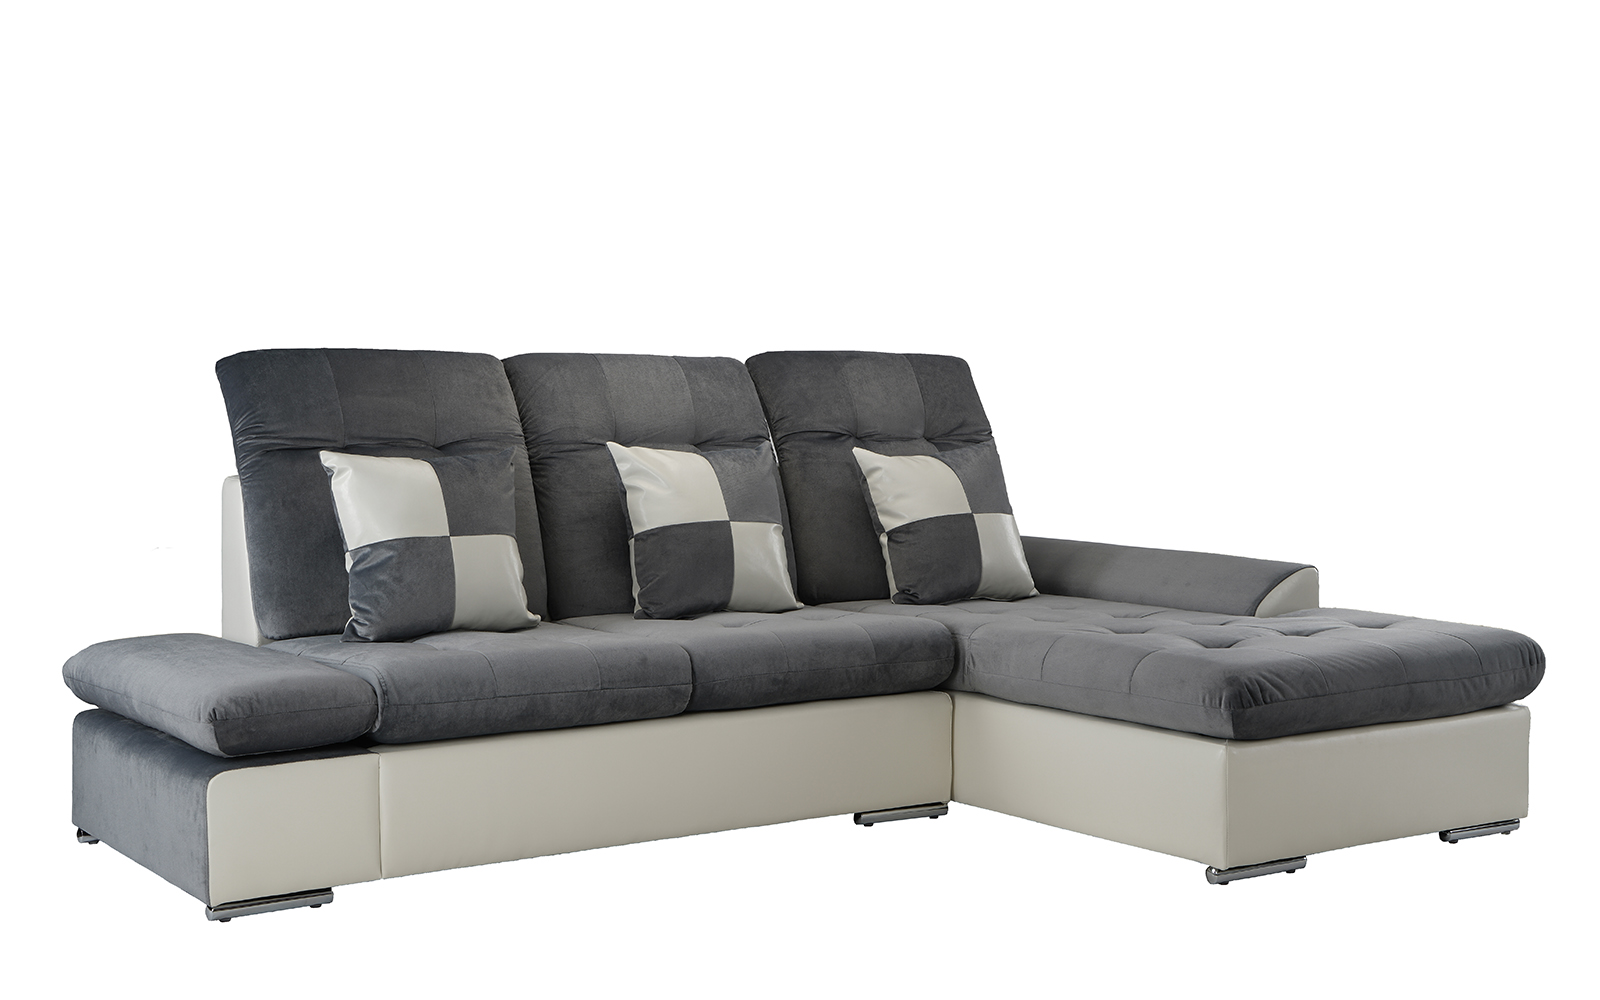 Microfiber Sectional Sofa Contemporary Microfiber Sectional Sofa With Chaise In Dark Grey